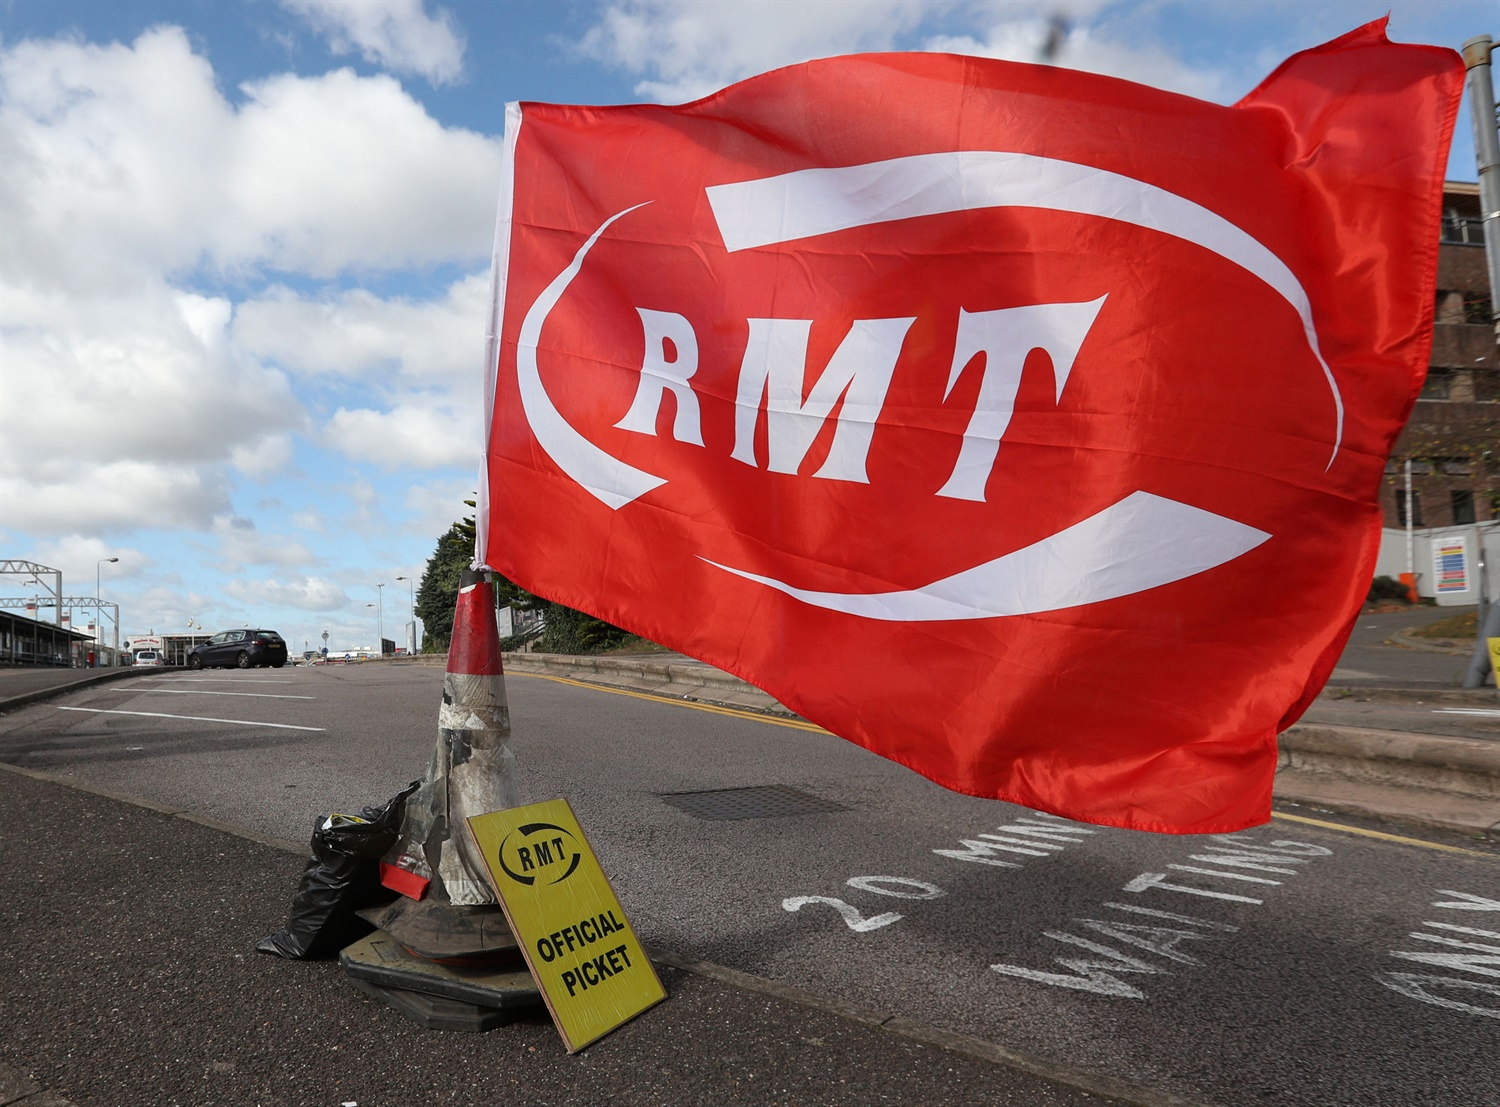 Northern calls for formal ACAS inquiry over bitter RMT dispute